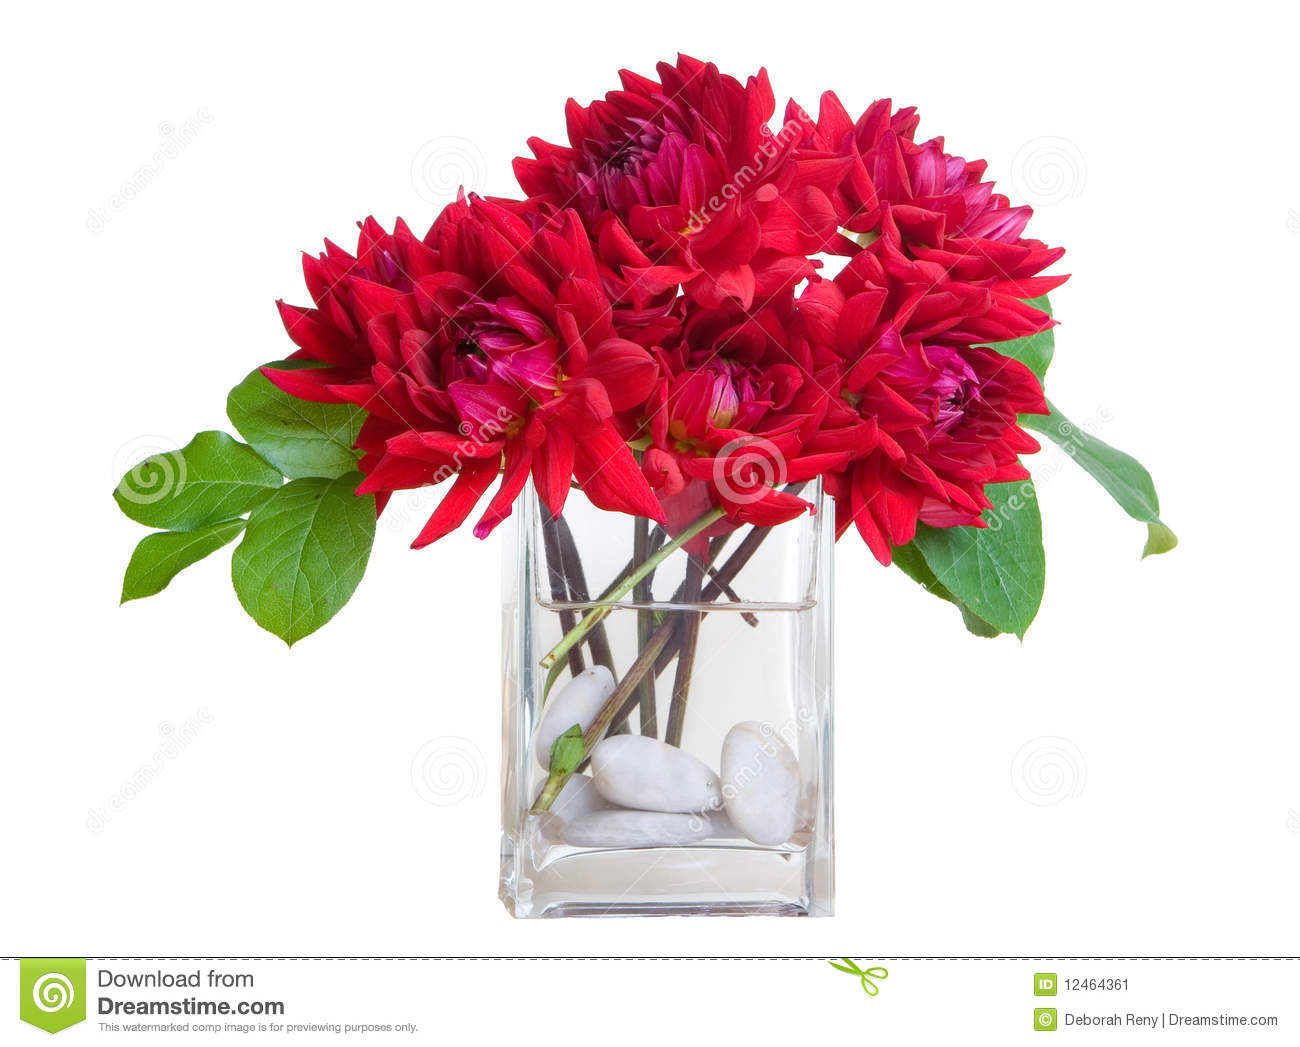 Red dahlia flowers in vase with river rocks wh stock image red dahlia flowers in vase with river rocks wh reviewsmspy